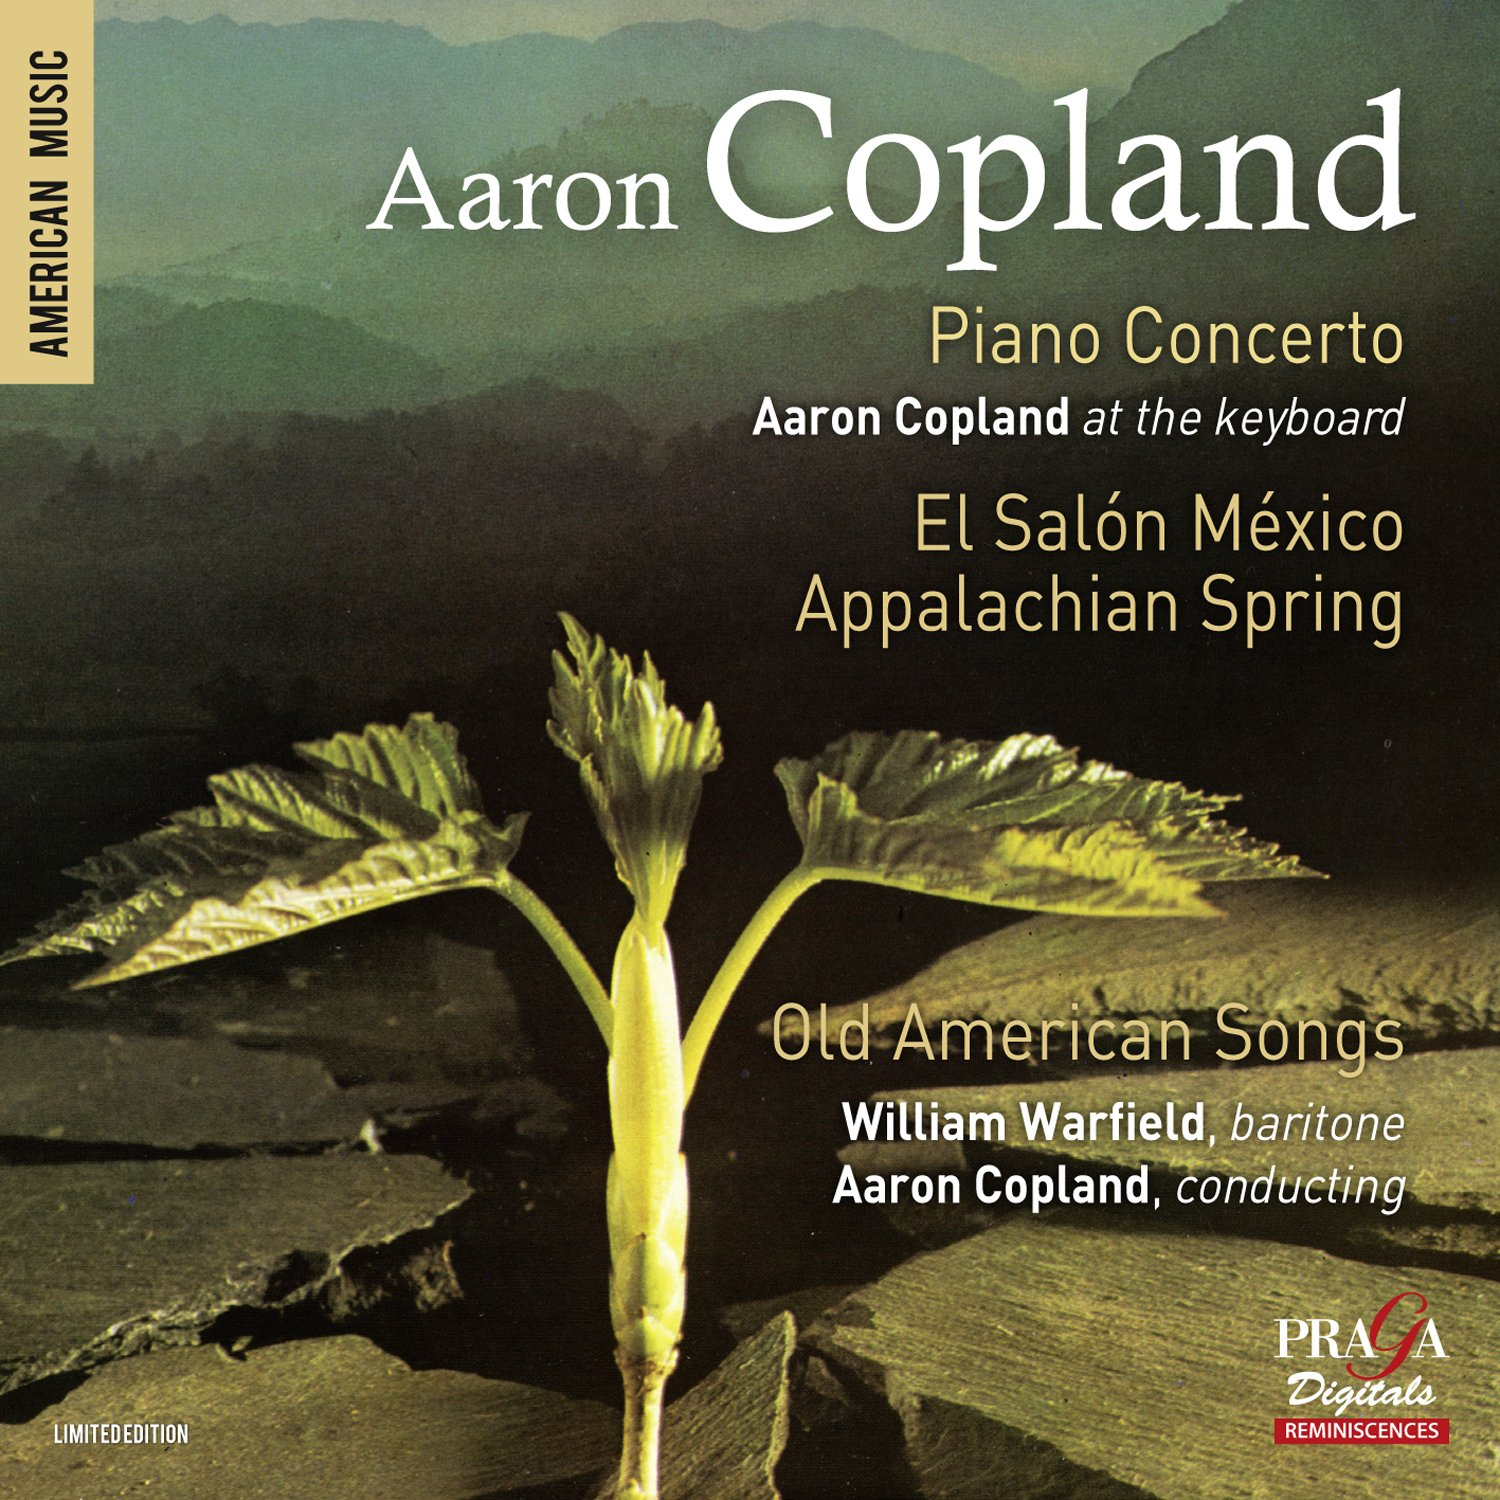 Copland: Piano Concerto, Appalachian Spring, Old American Songs